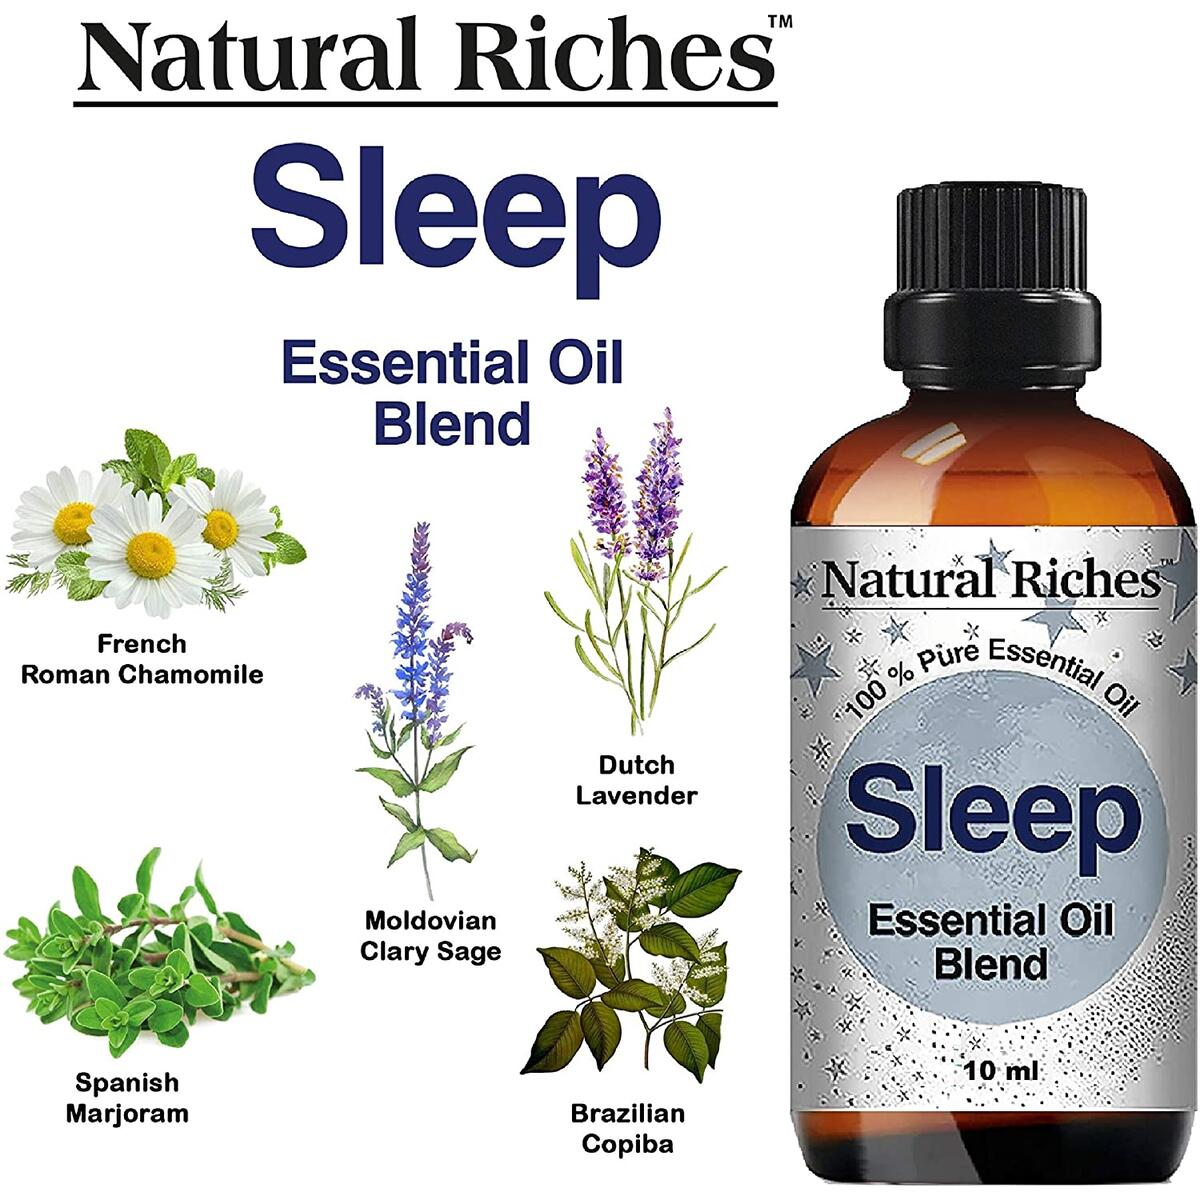 Natural Riches Tranquility Serenity Essential Oil Blends Set with Sleep, Stress Relief and Head Easy Essential Oils 3 x 10 ml…